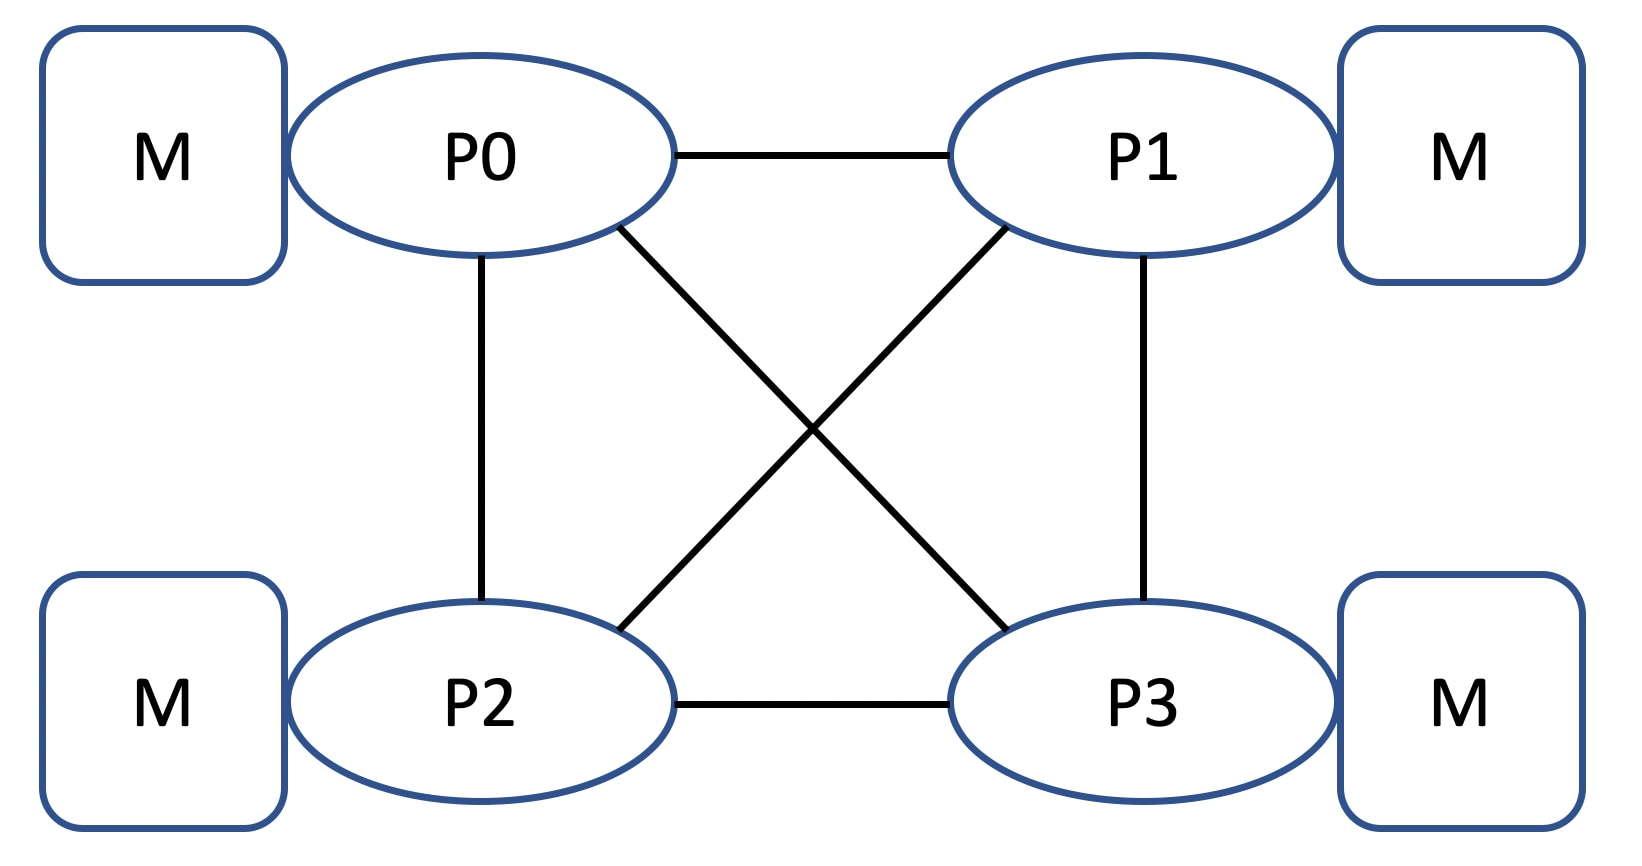 The system in this study has four sockets, using processors with three UPI links each, allowing a fully connected topology: